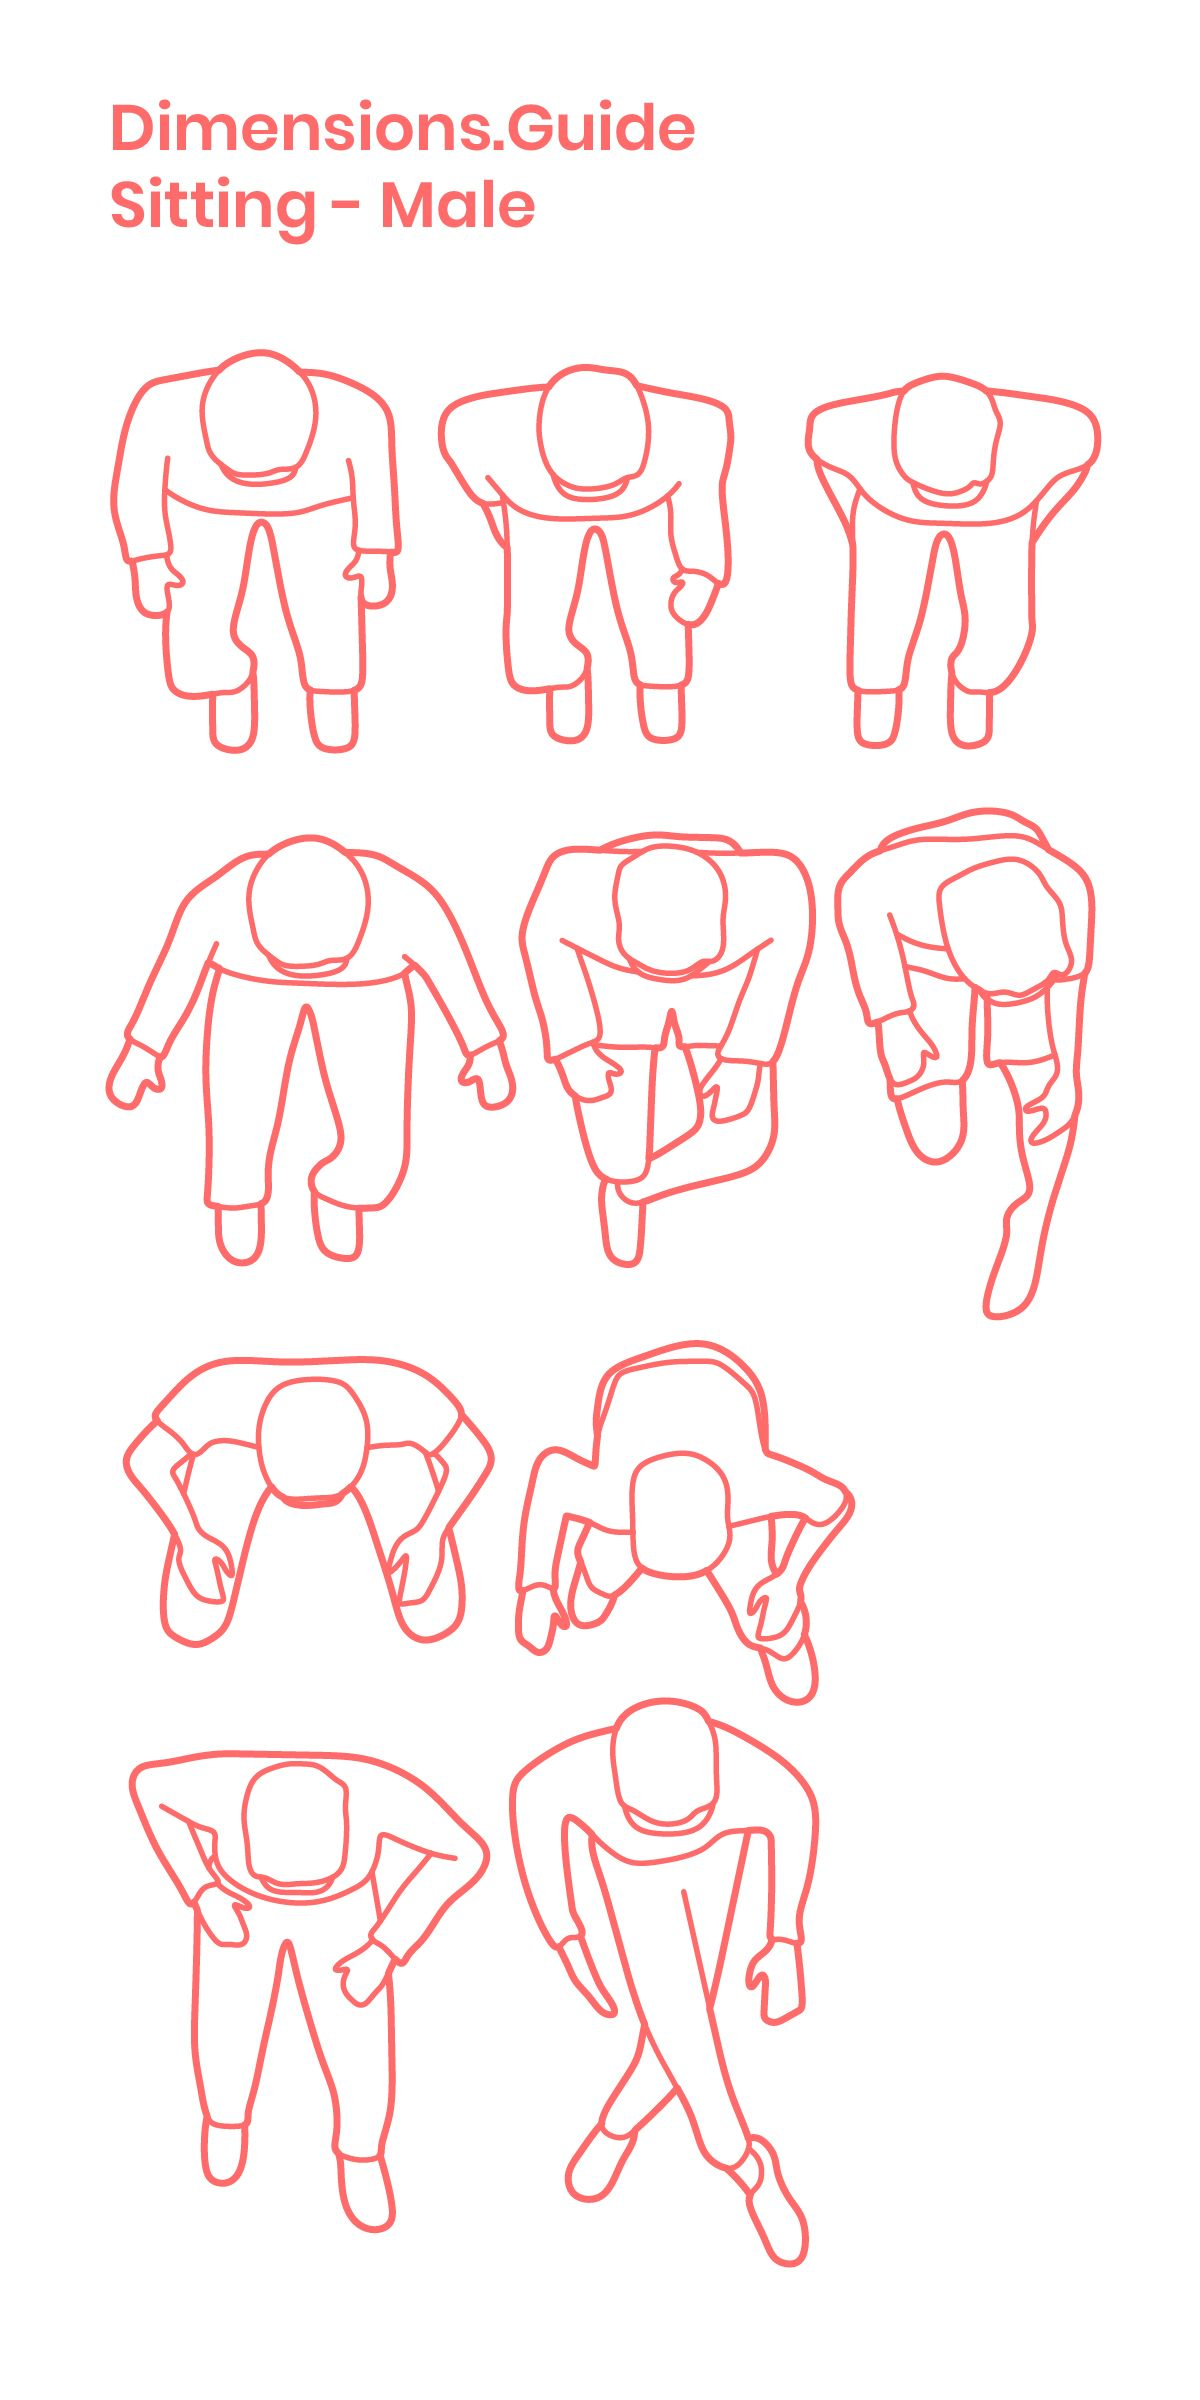 Collection Of Scaled Drawings Of Men Sitting As Viewed From An